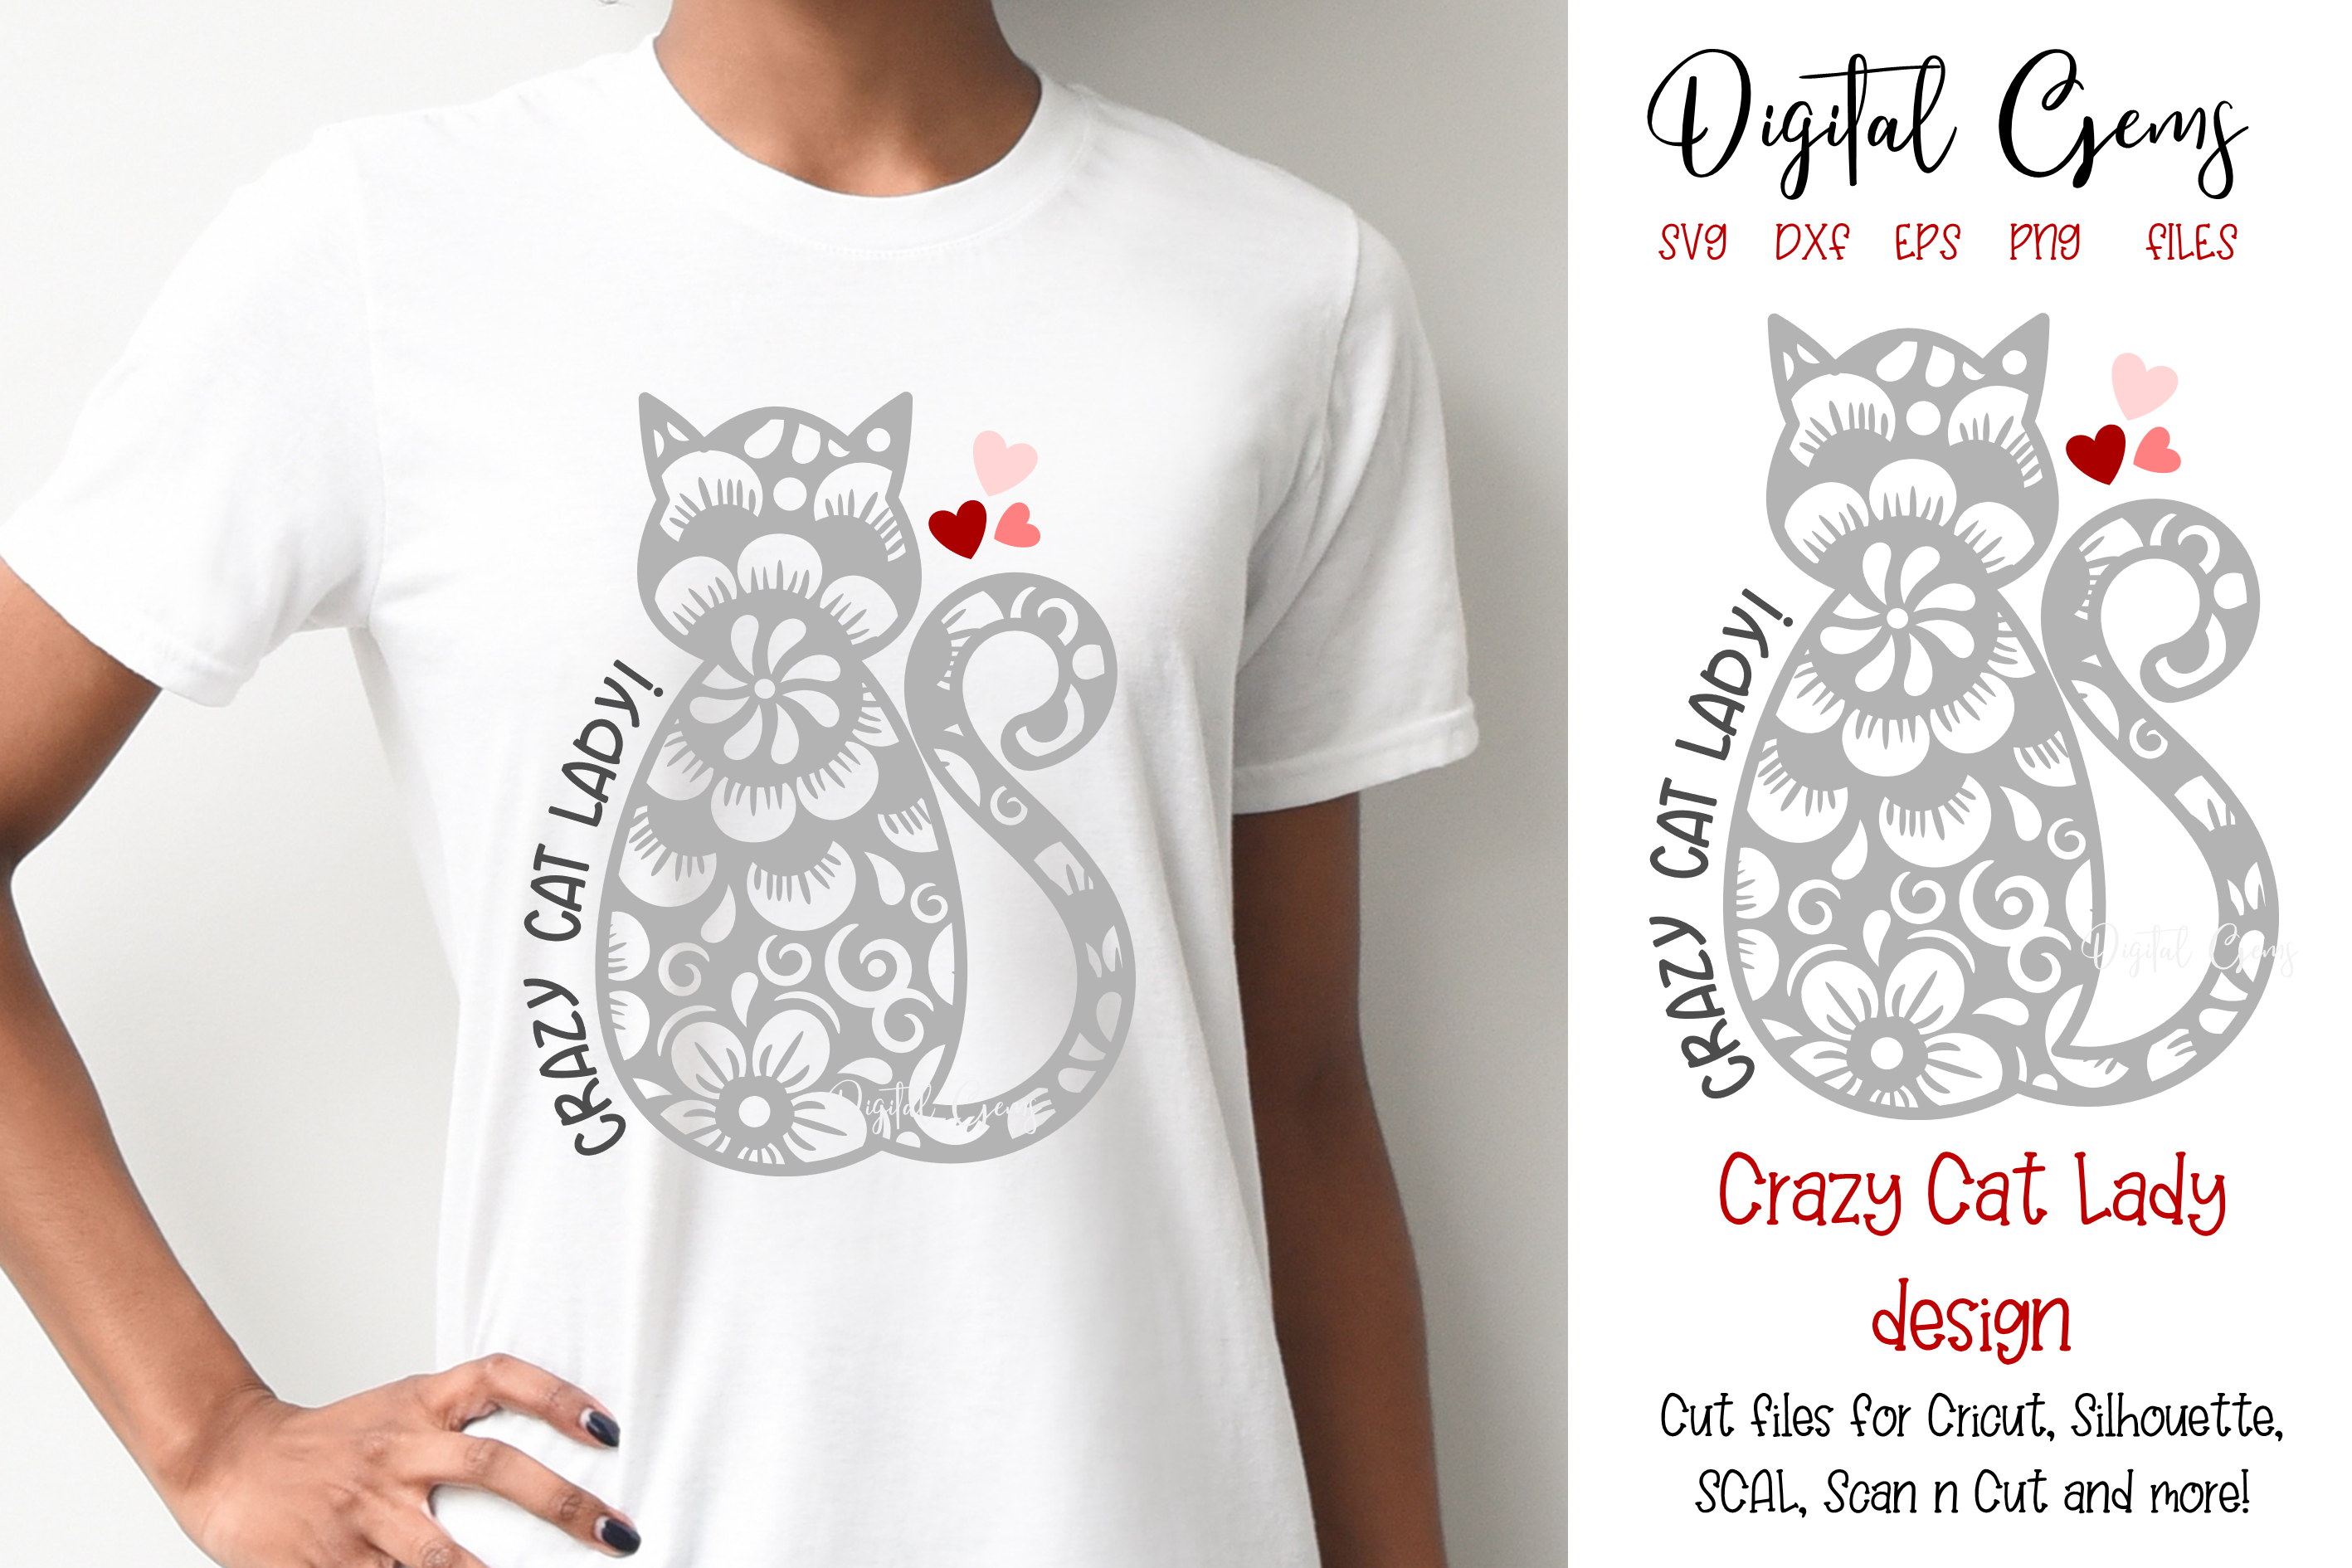 Download Free Crazy Cat Lady Design Graphic By Digital Gems Creative Fabrica for Cricut Explore, Silhouette and other cutting machines.